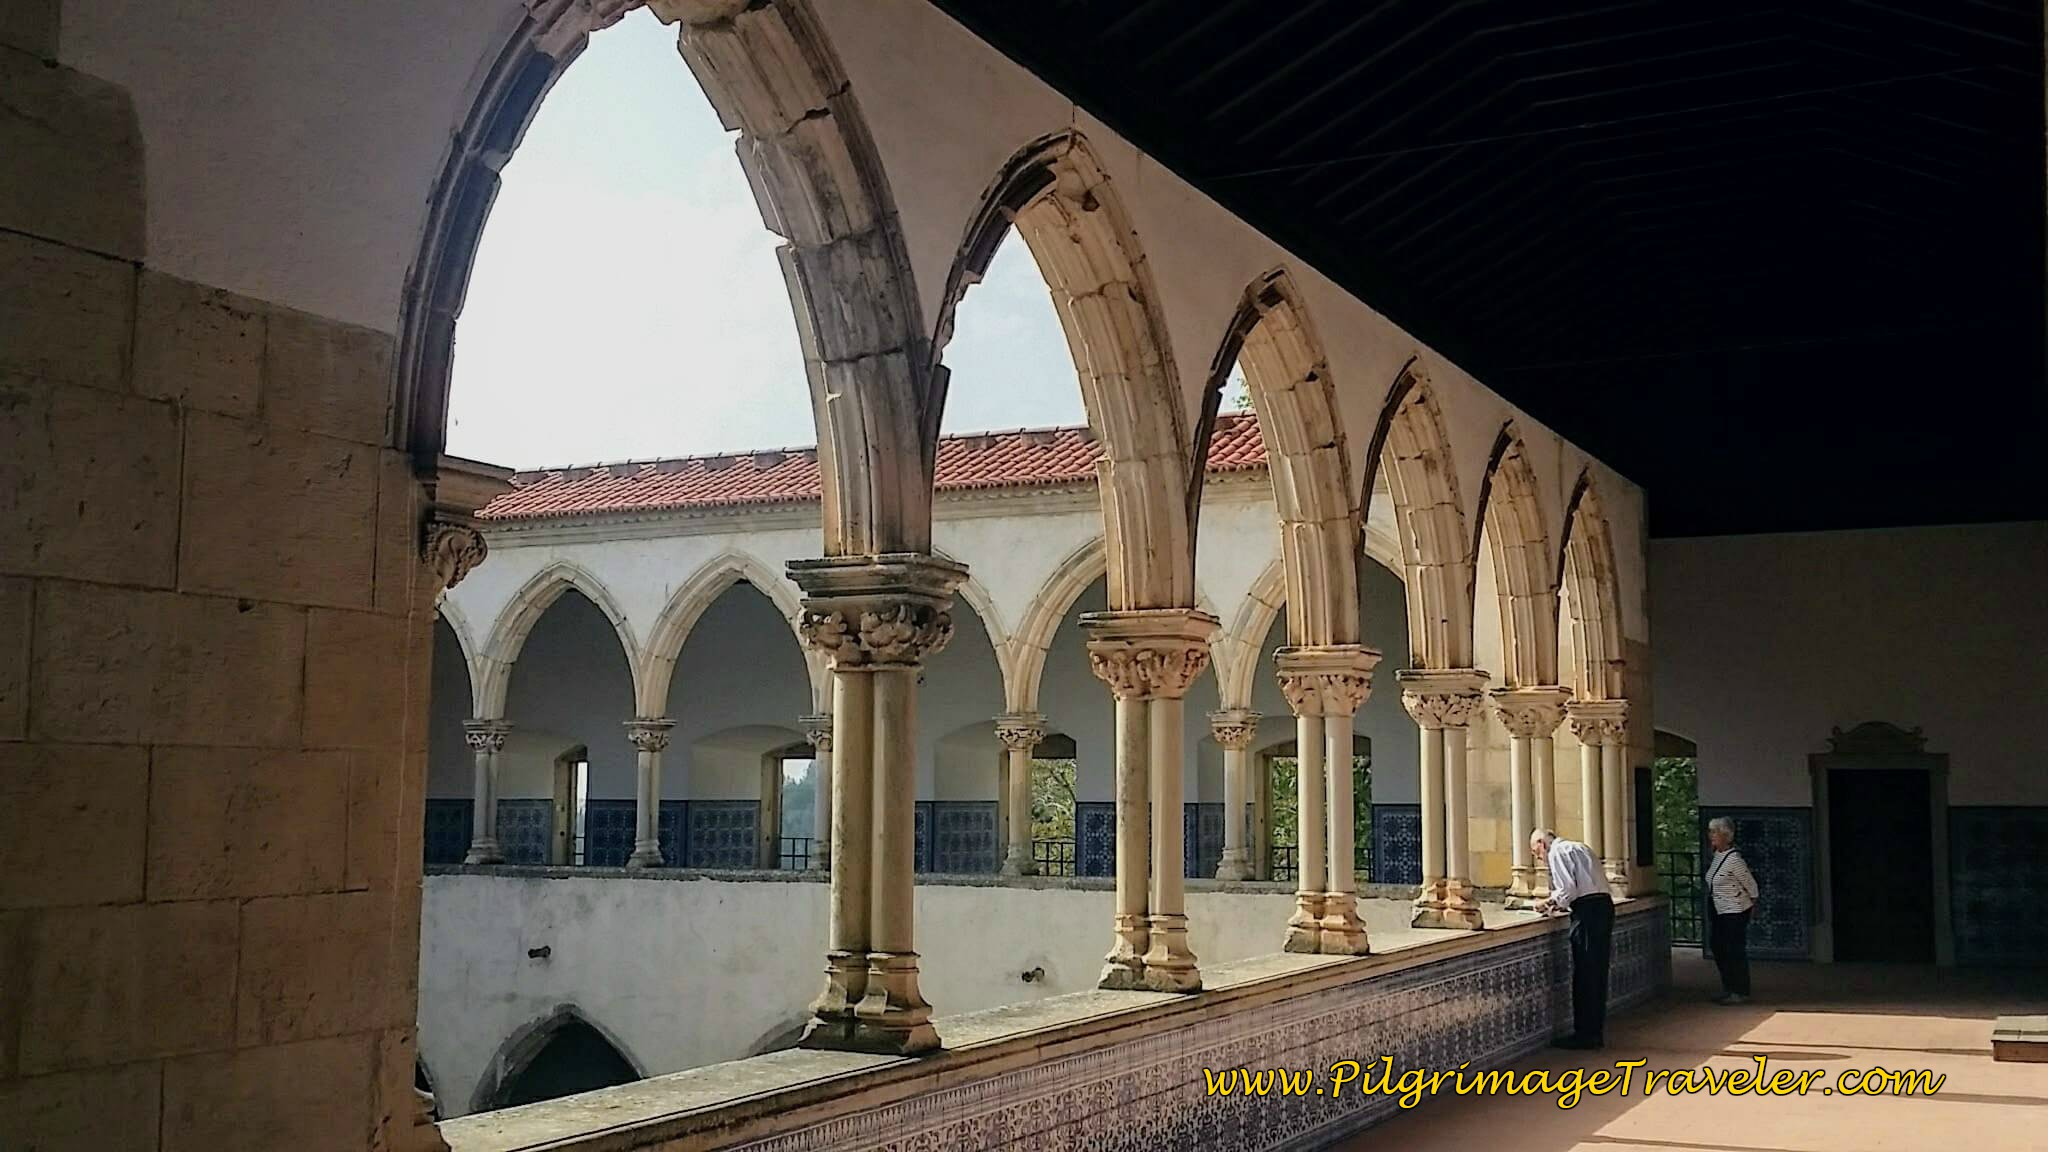 Upper Level of the Main Cloister, Convento de Cristo, Tomar